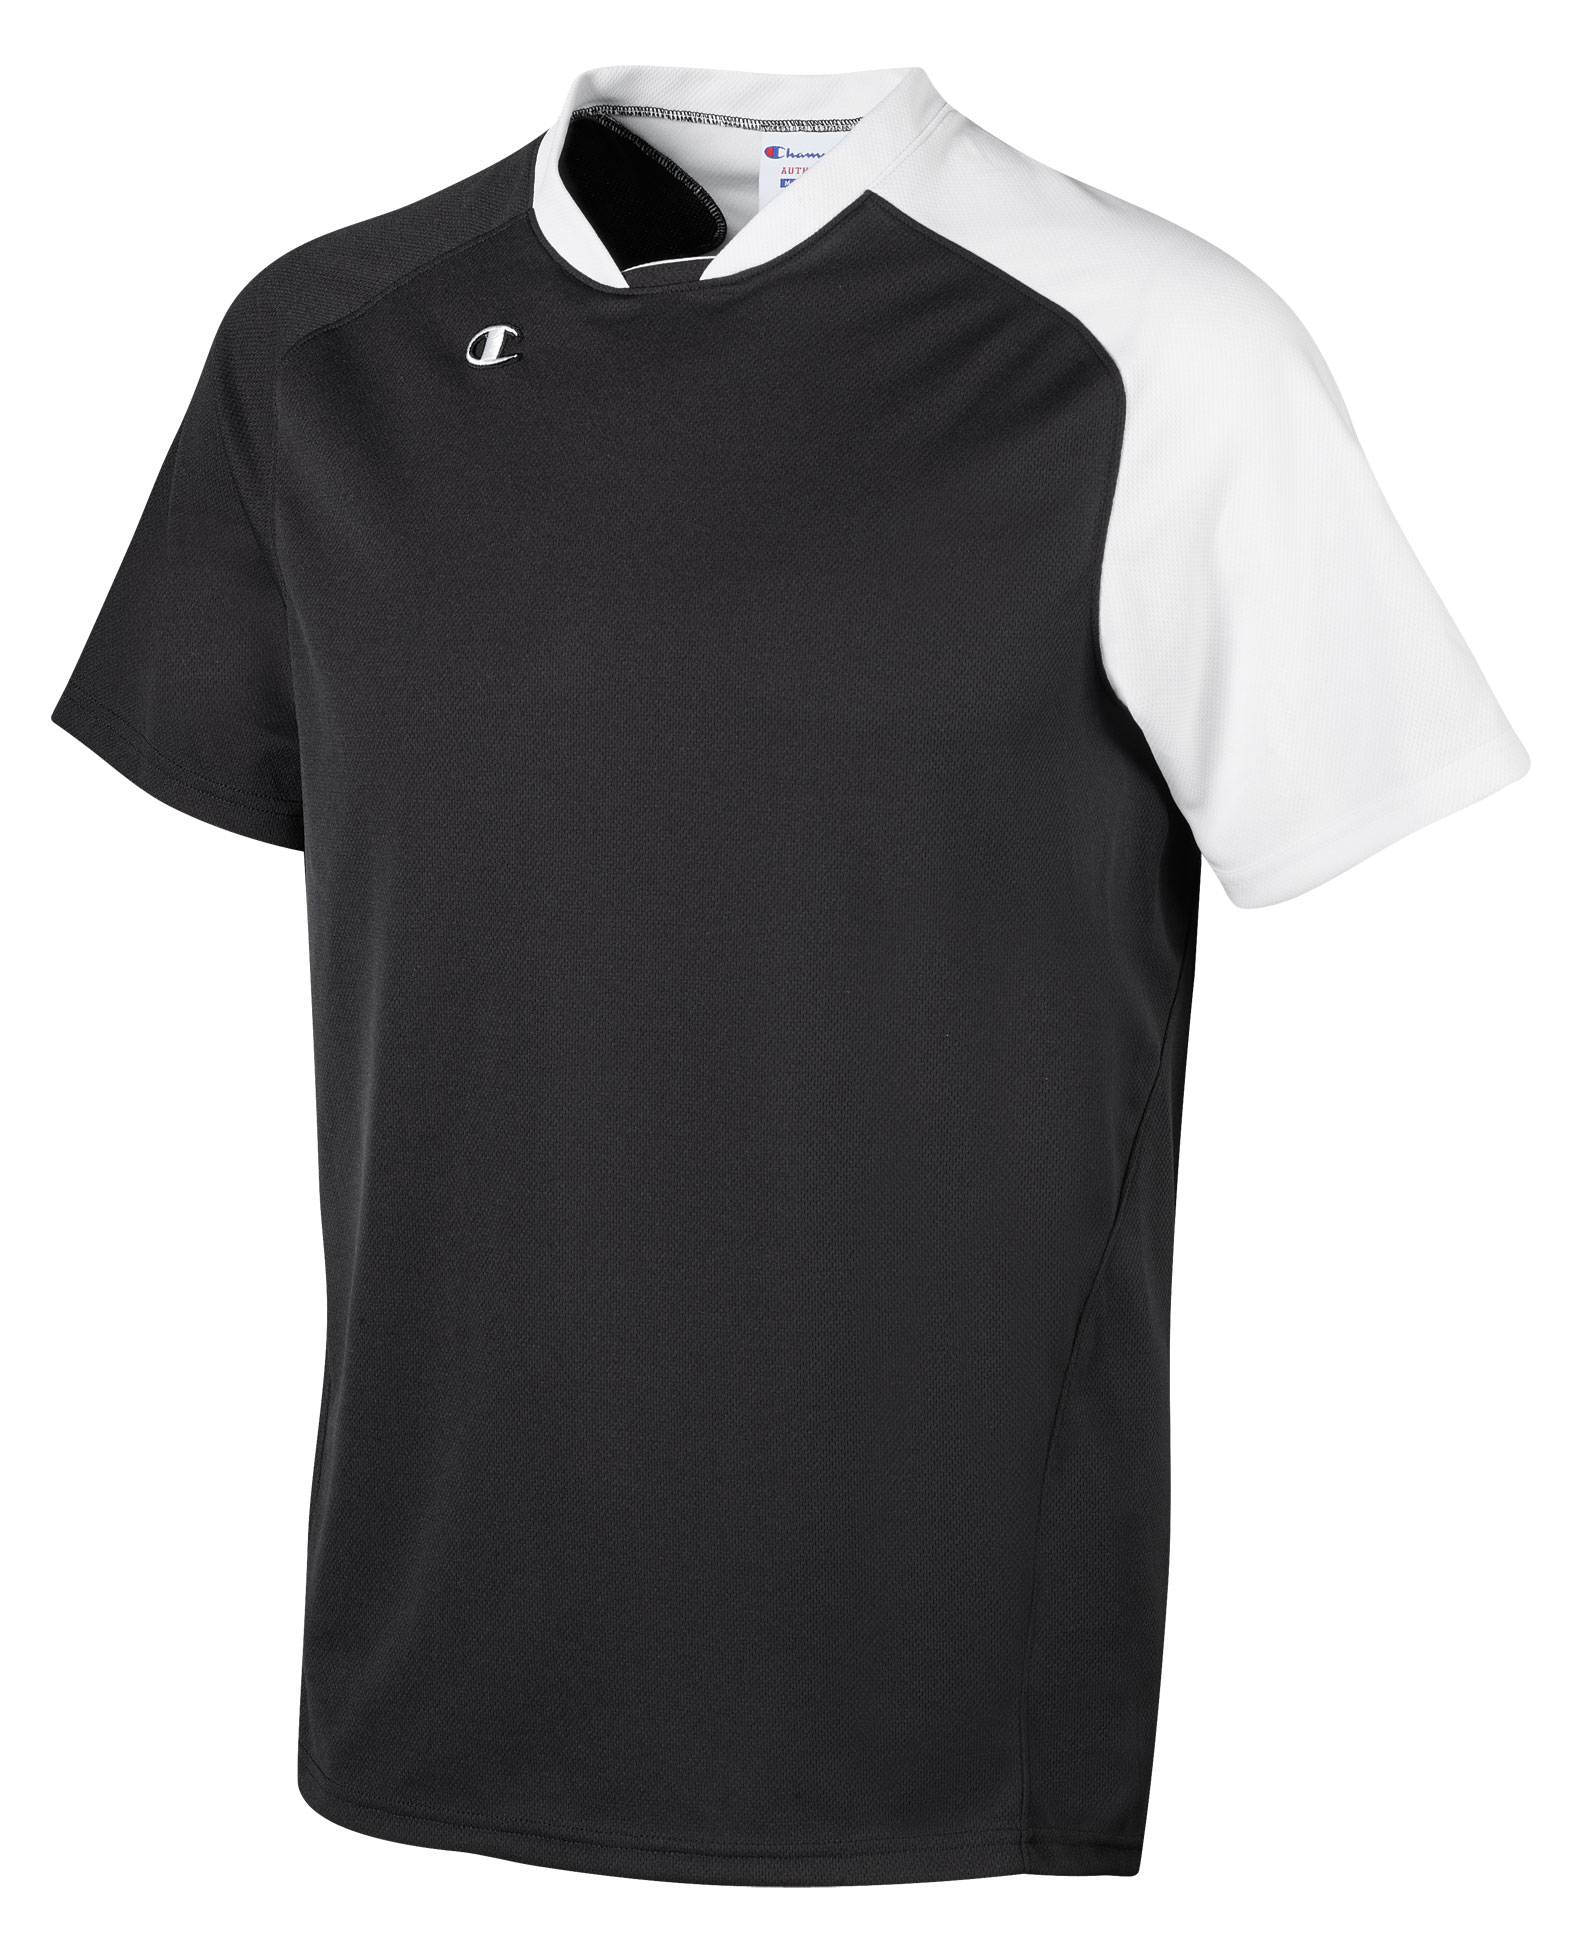 Youth Advantage Soccer Jersey